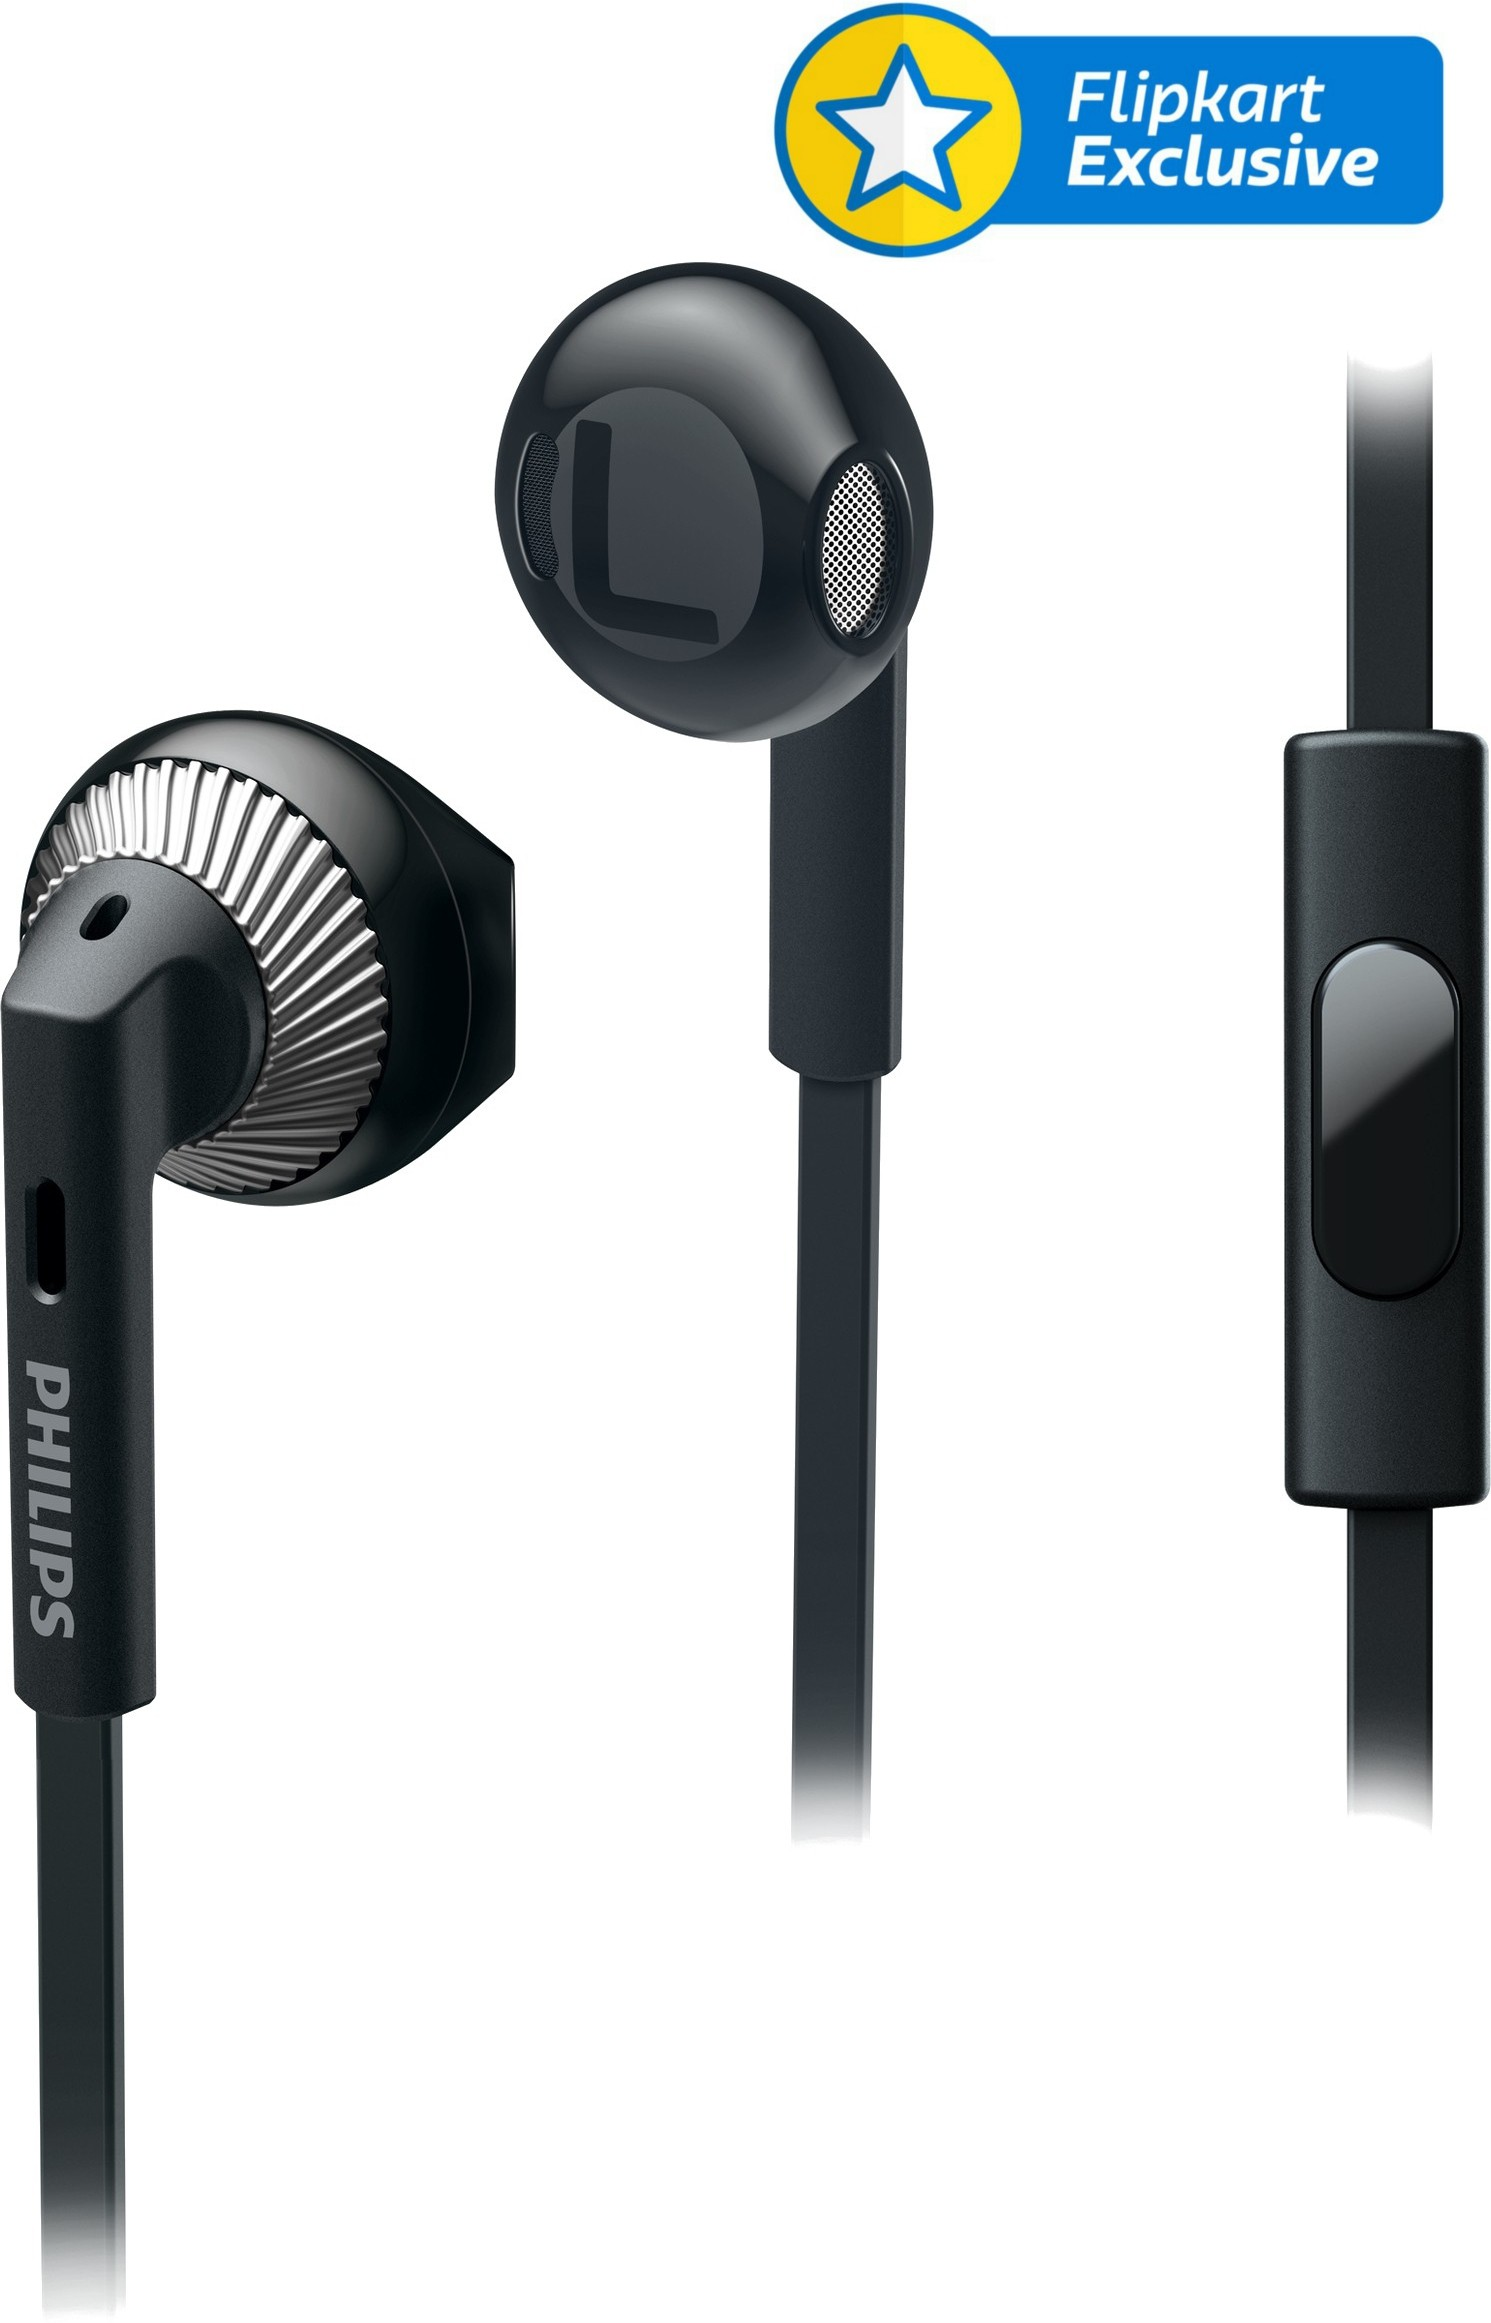 Deals - Dhekiajuli - Under ₹799 <br> Motorola, Skullcandy..<br> Category - mobiles_and_accessories<br> Business - Flipkart.com